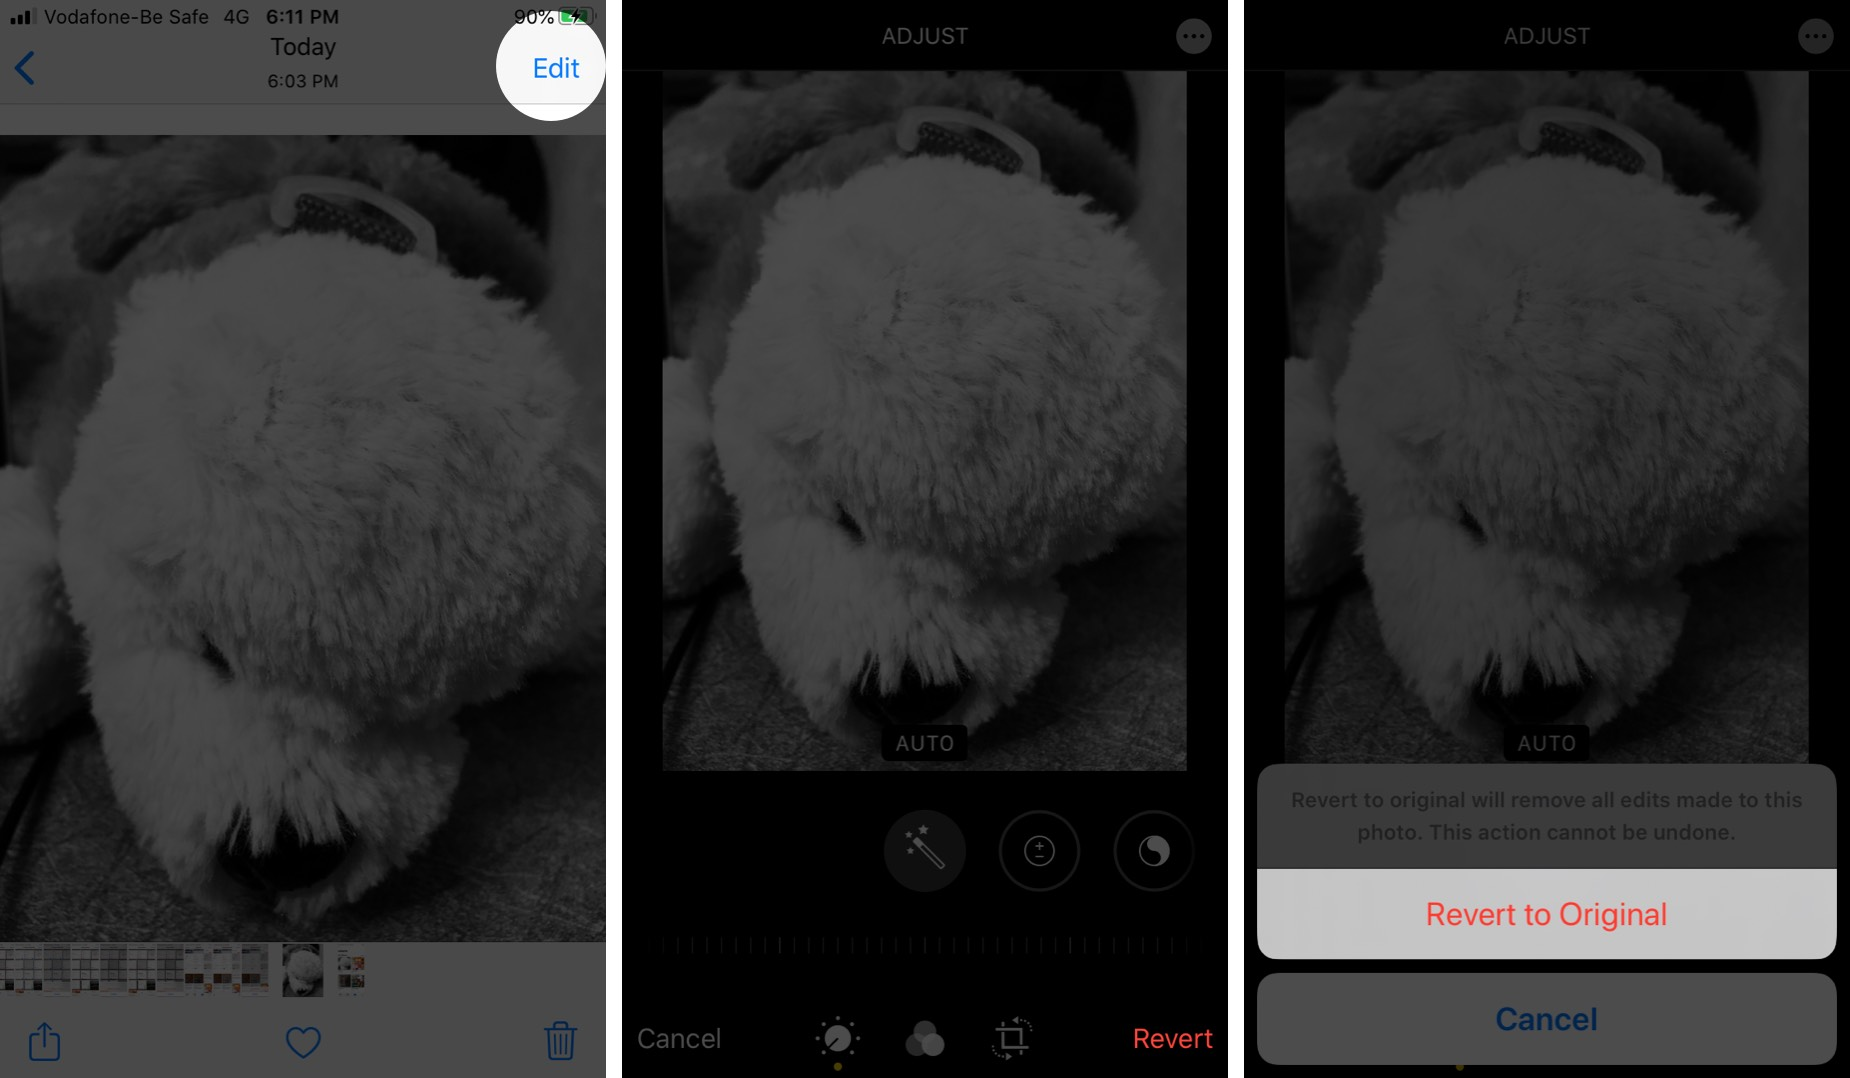 tap on revert to remove filters and effects from photos on iphone